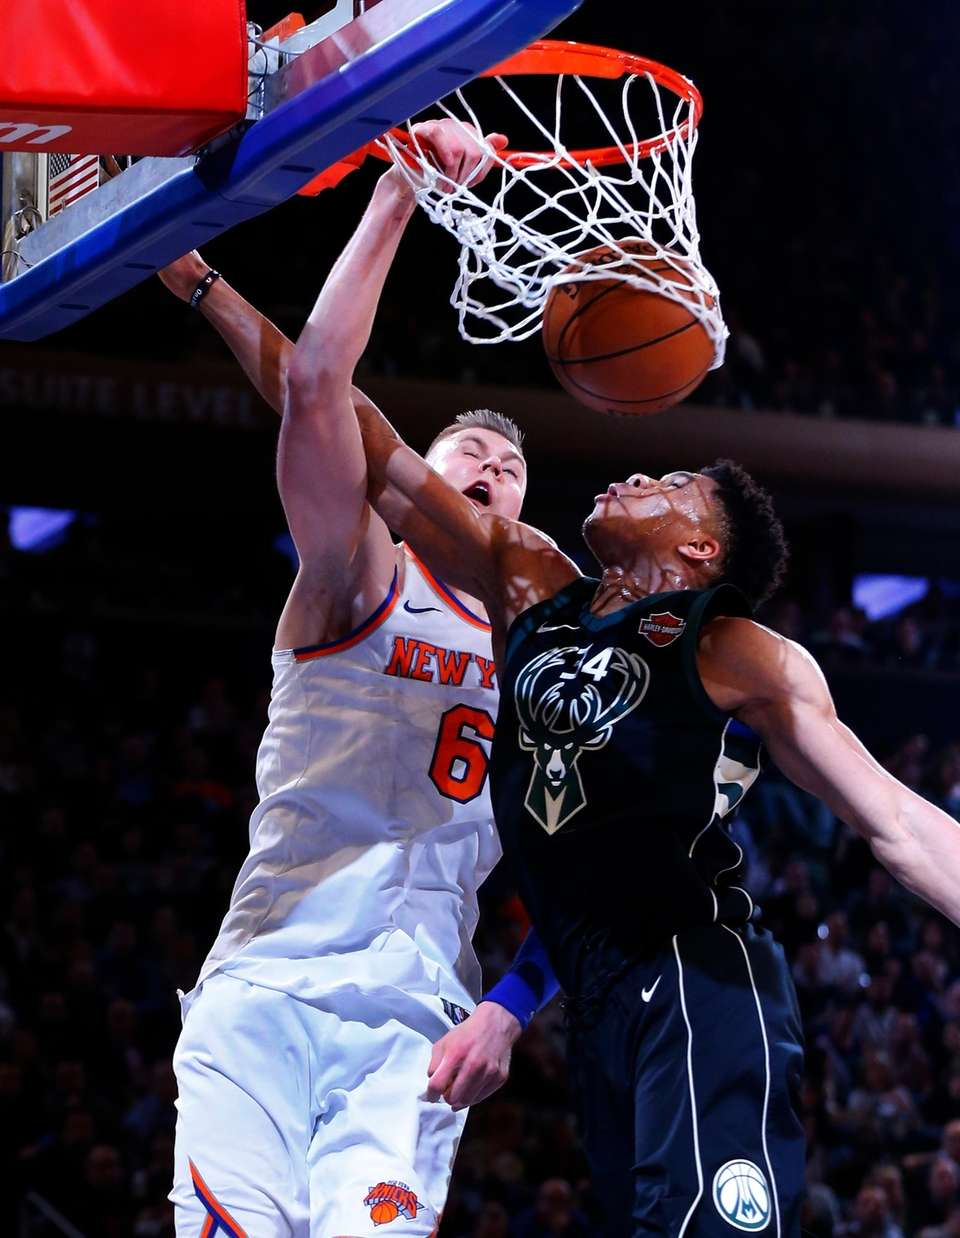 Kristaps Porzingis of the Knicks dunks the ball